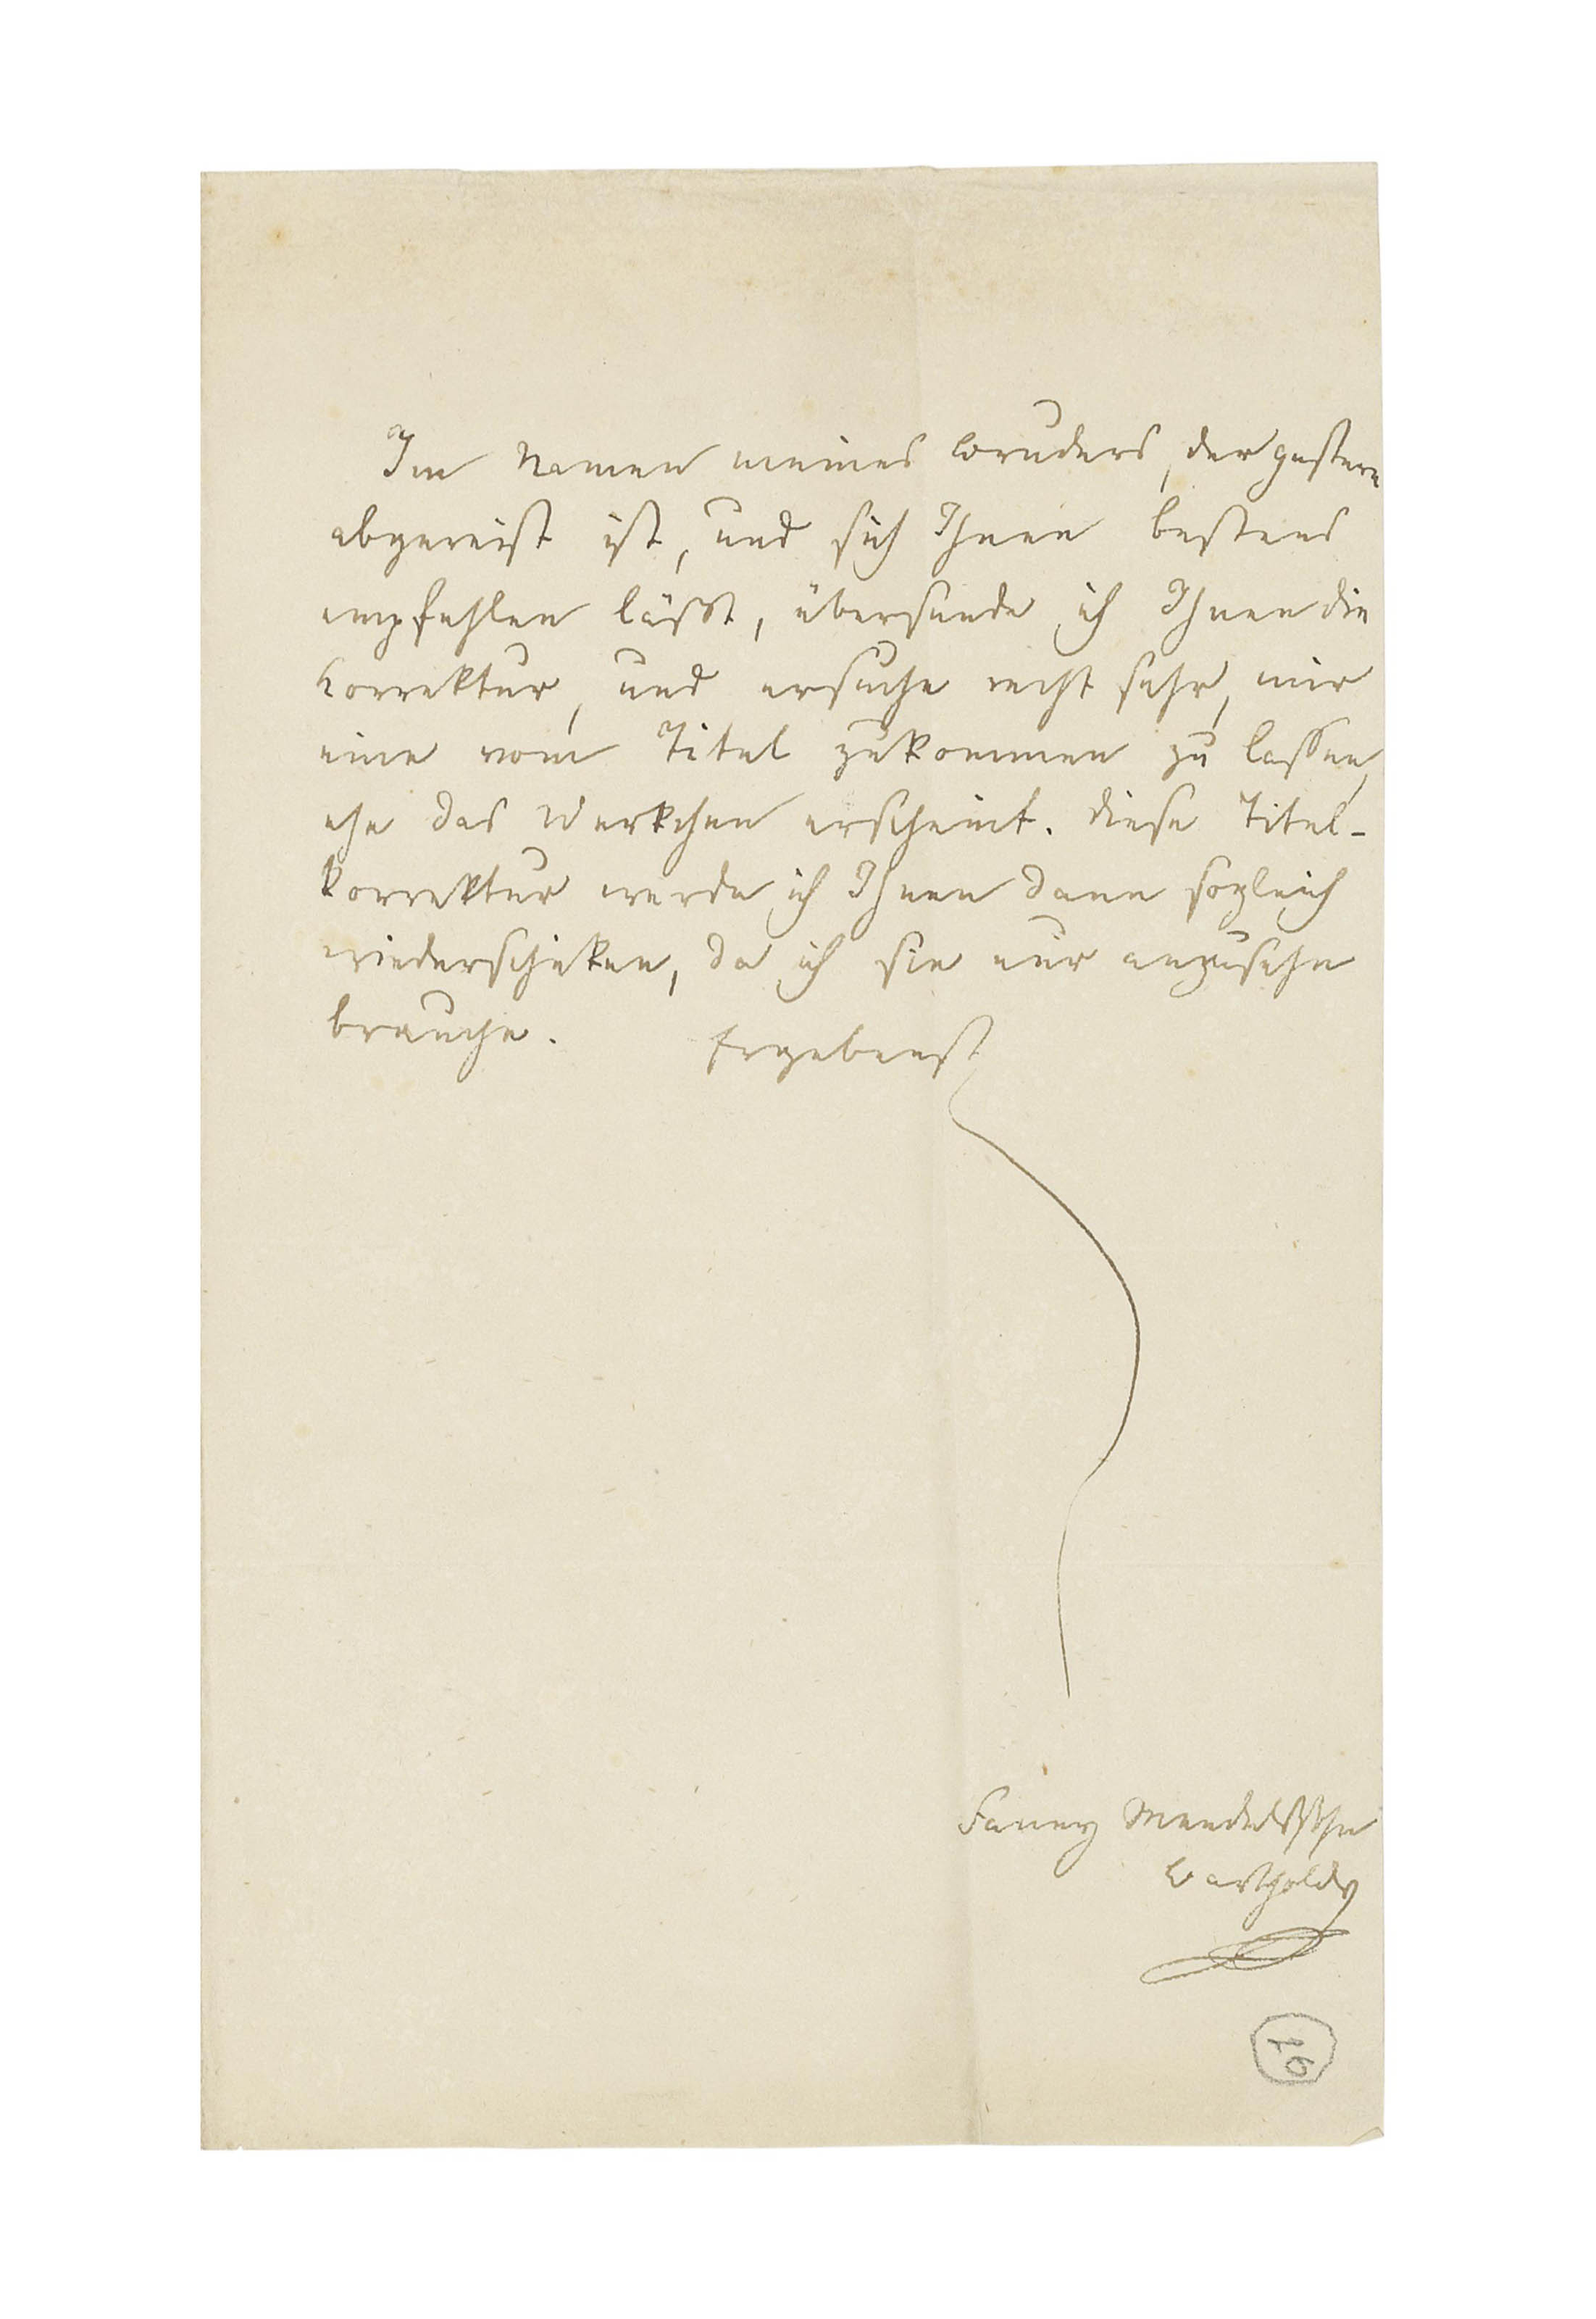 MENDELSSOHN BARTHOLDY, Fanny (1805-1847, married name Fanny Hensel). Autograph letter signed ('Fanny Mendelssohn Bartholdy') to the publisher Adolph Martin Schlesinger, [Berlin, 11 April 1829], sending, on behalf of her brother Felix who has departed the previous day [on his first trip to London], a set of galley proofs, and asking to see a proof of the title page 'before the little work appears. I will then return this title proof to you straightaway, as I only need to glance at it', half page, 4to, integral address leaf (seal tear, light soiling).